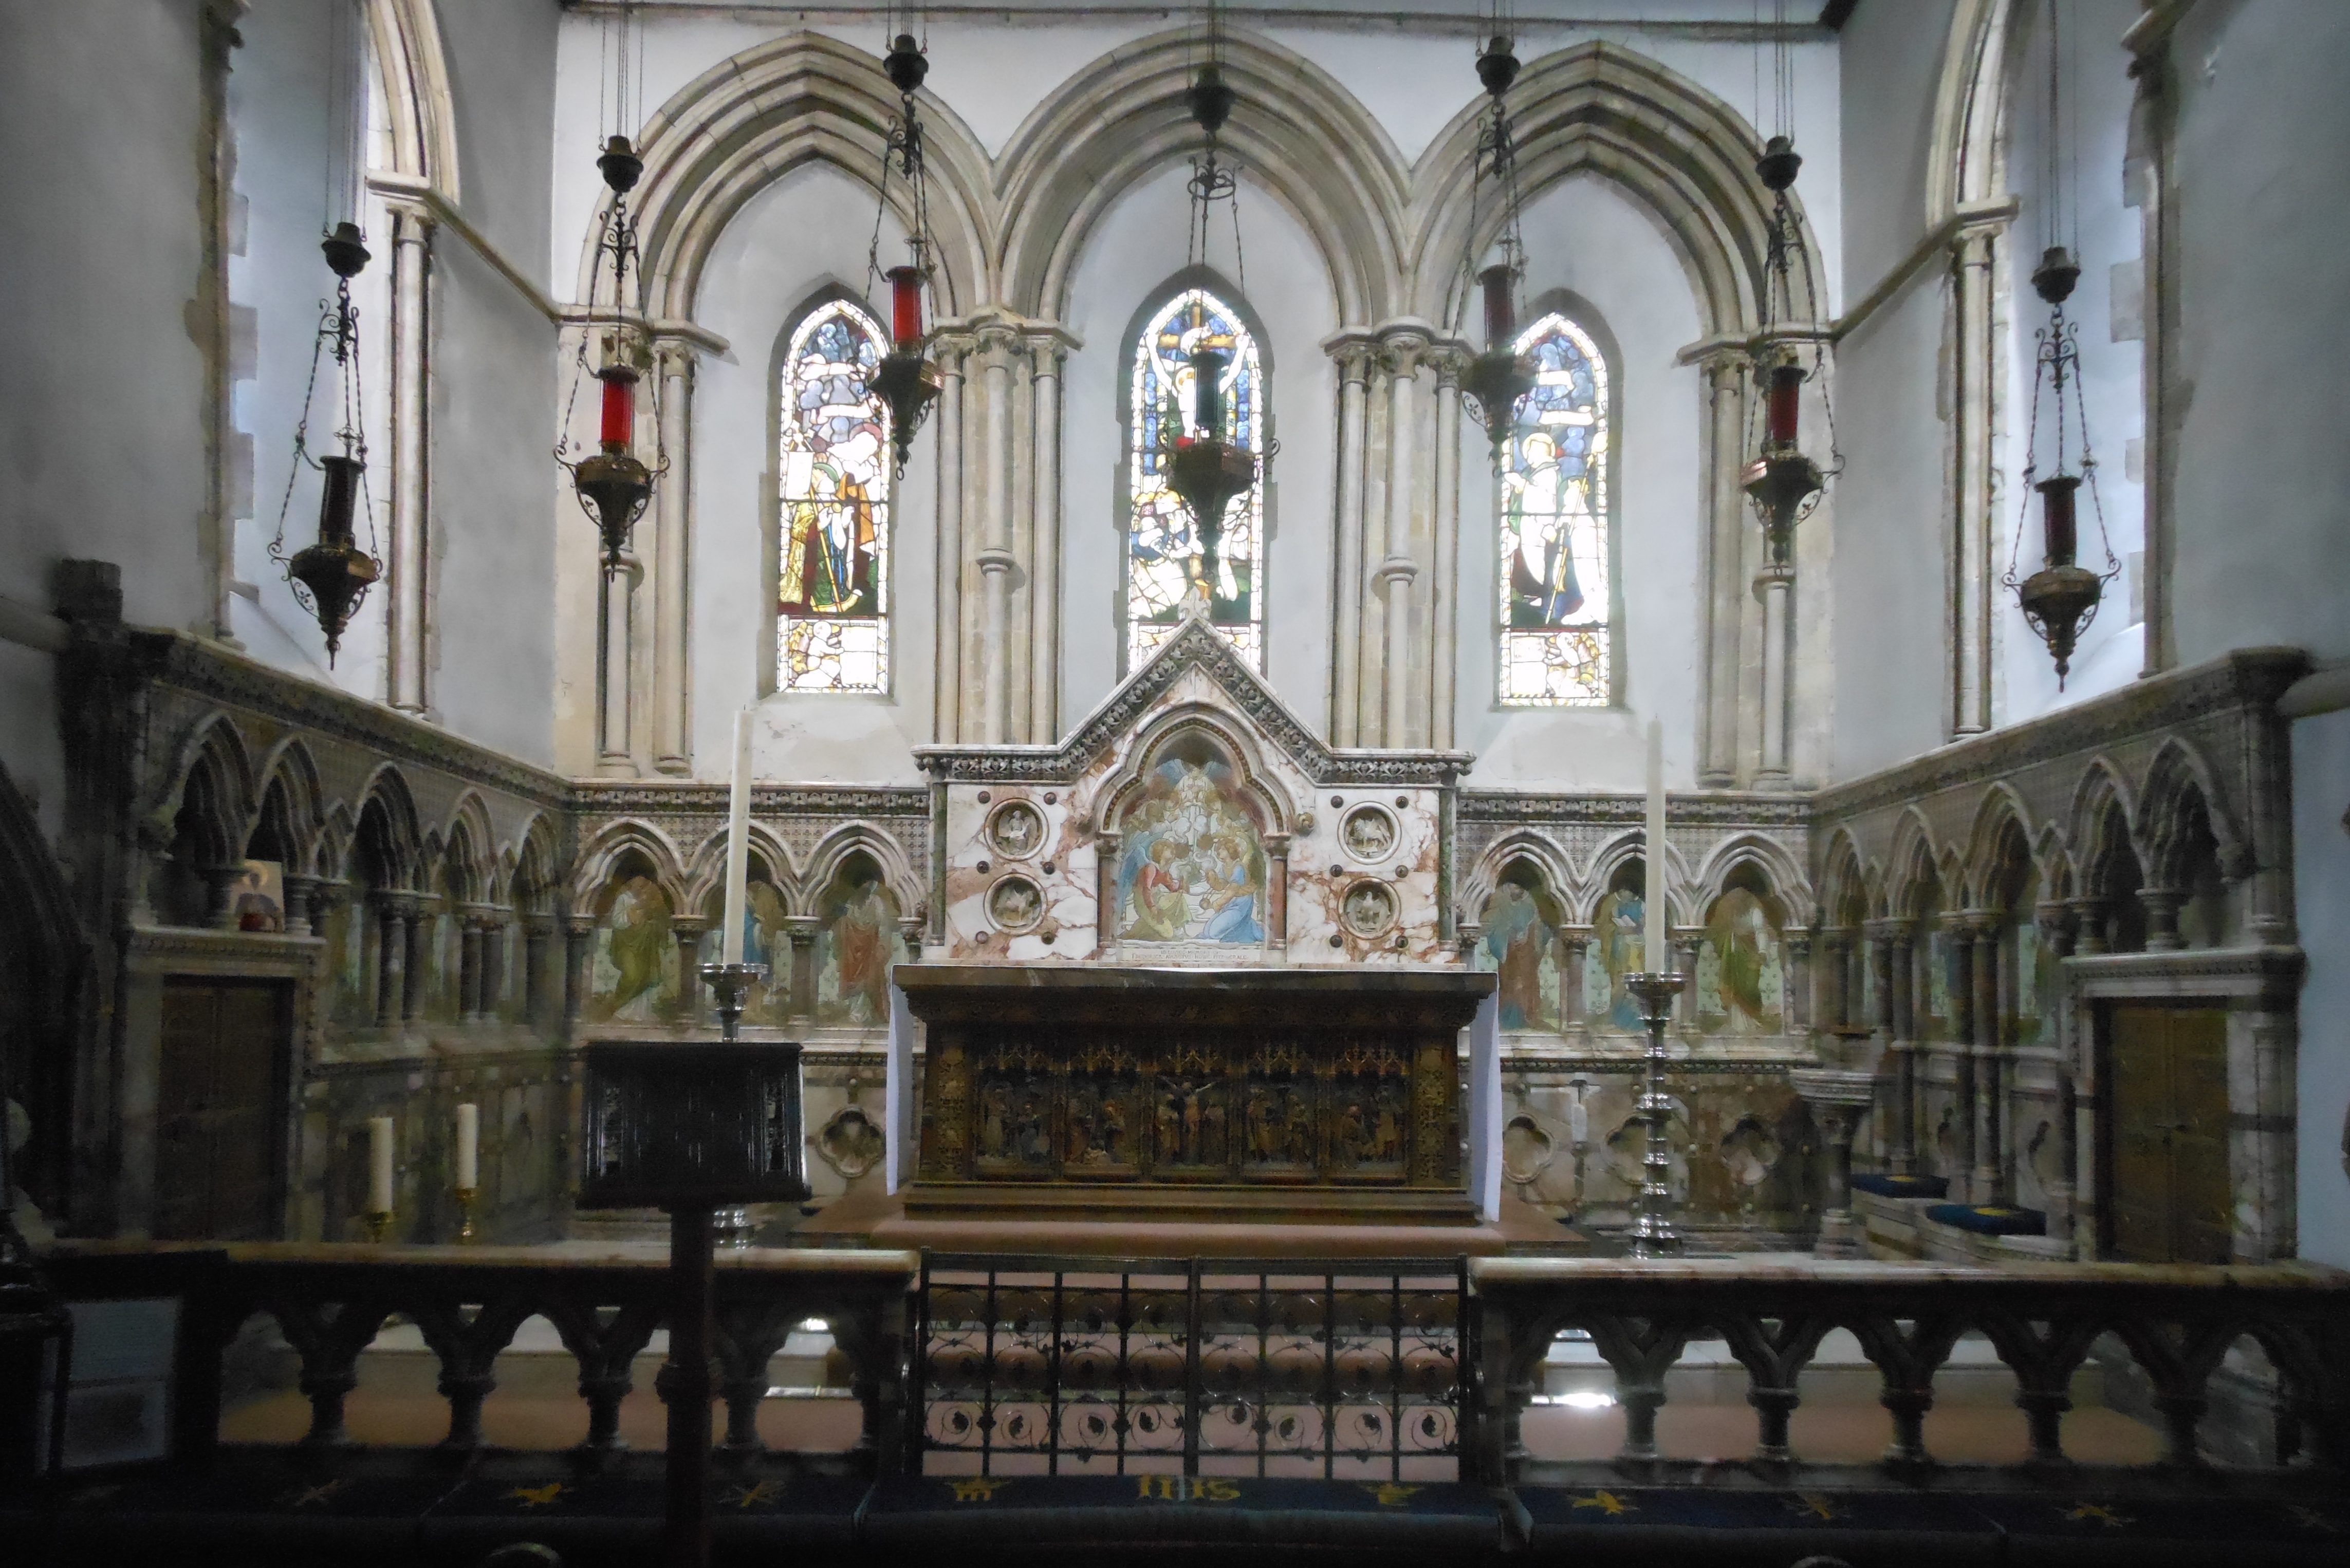 Wide view of a church altar area